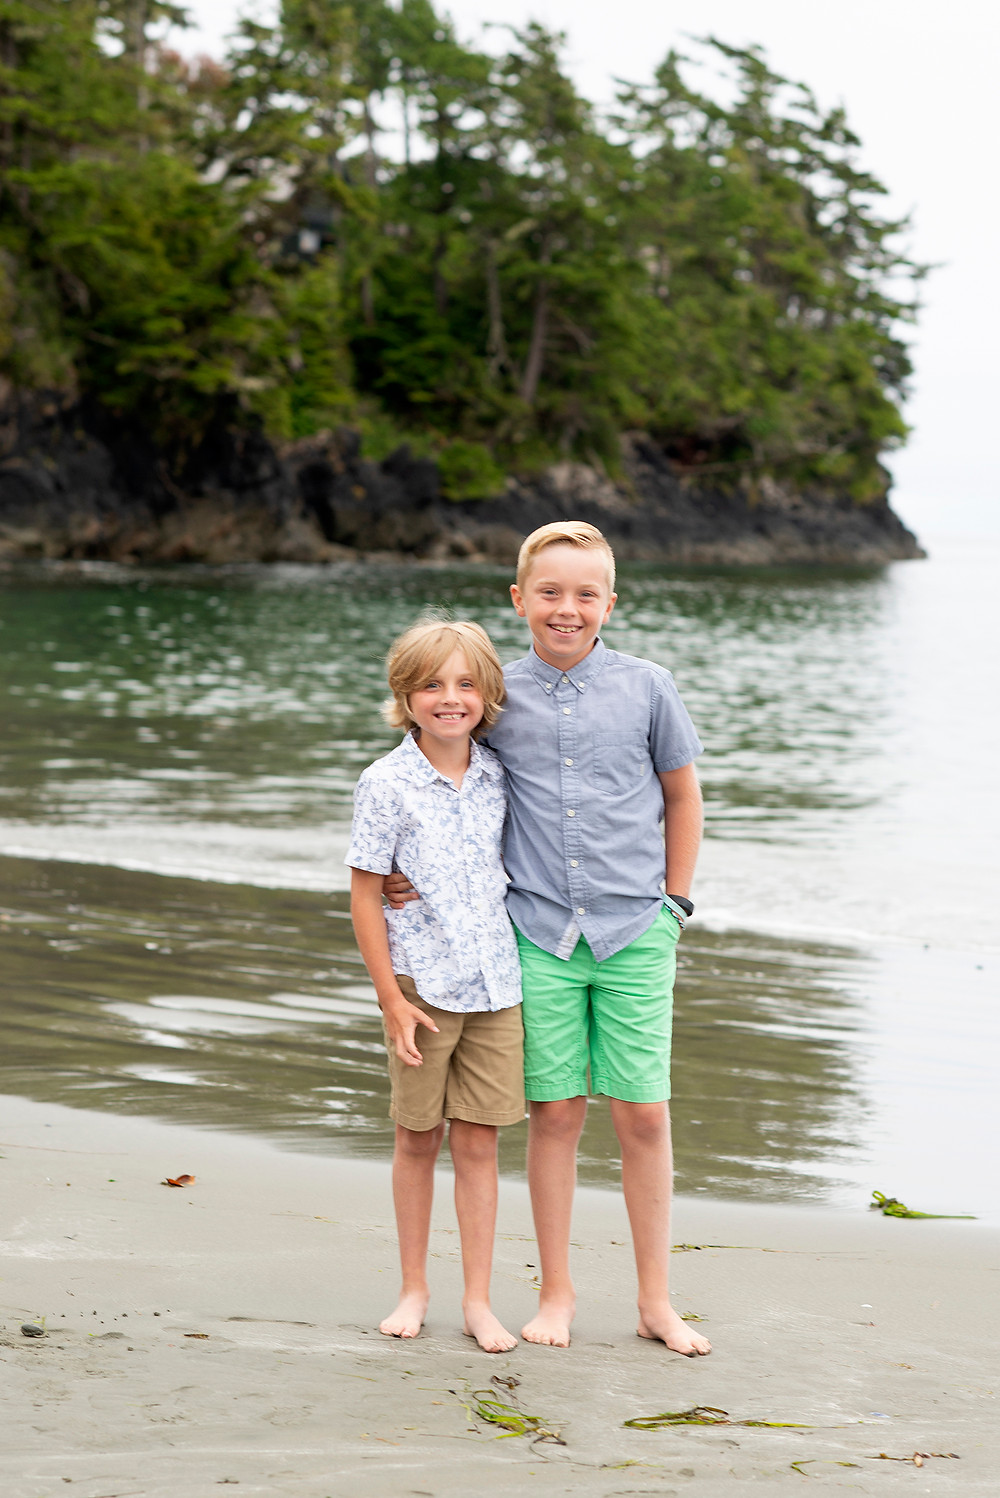 Brothers at the beach in Tofino. Photographed by Kaitlyn Shea.